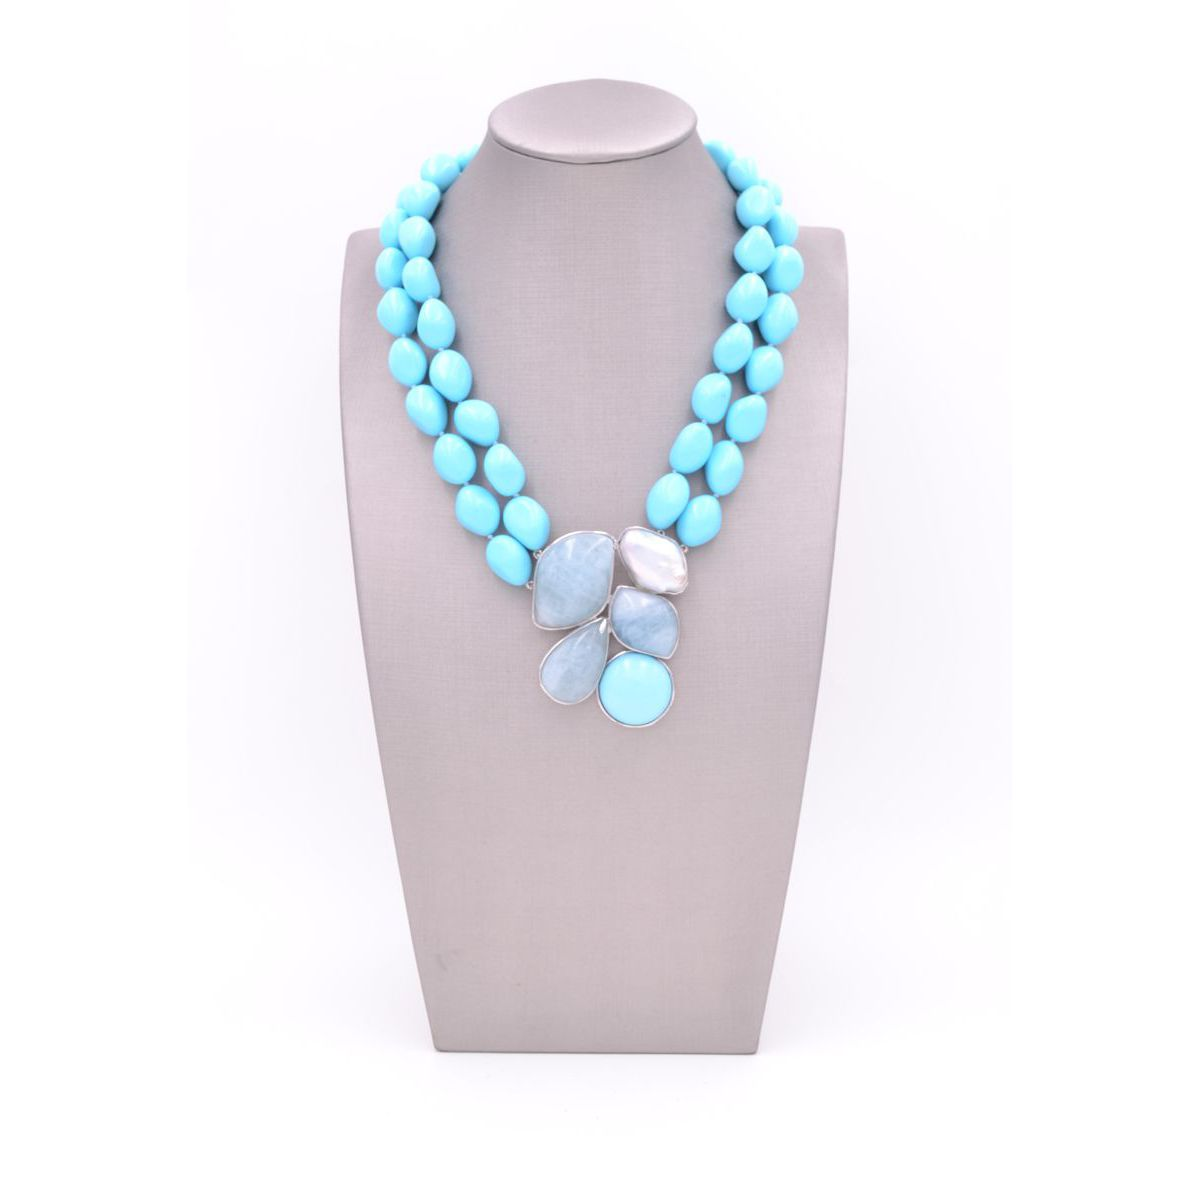 AQUAMARINE AND TURQUOISE CHOKER Turquoise Della Rovere